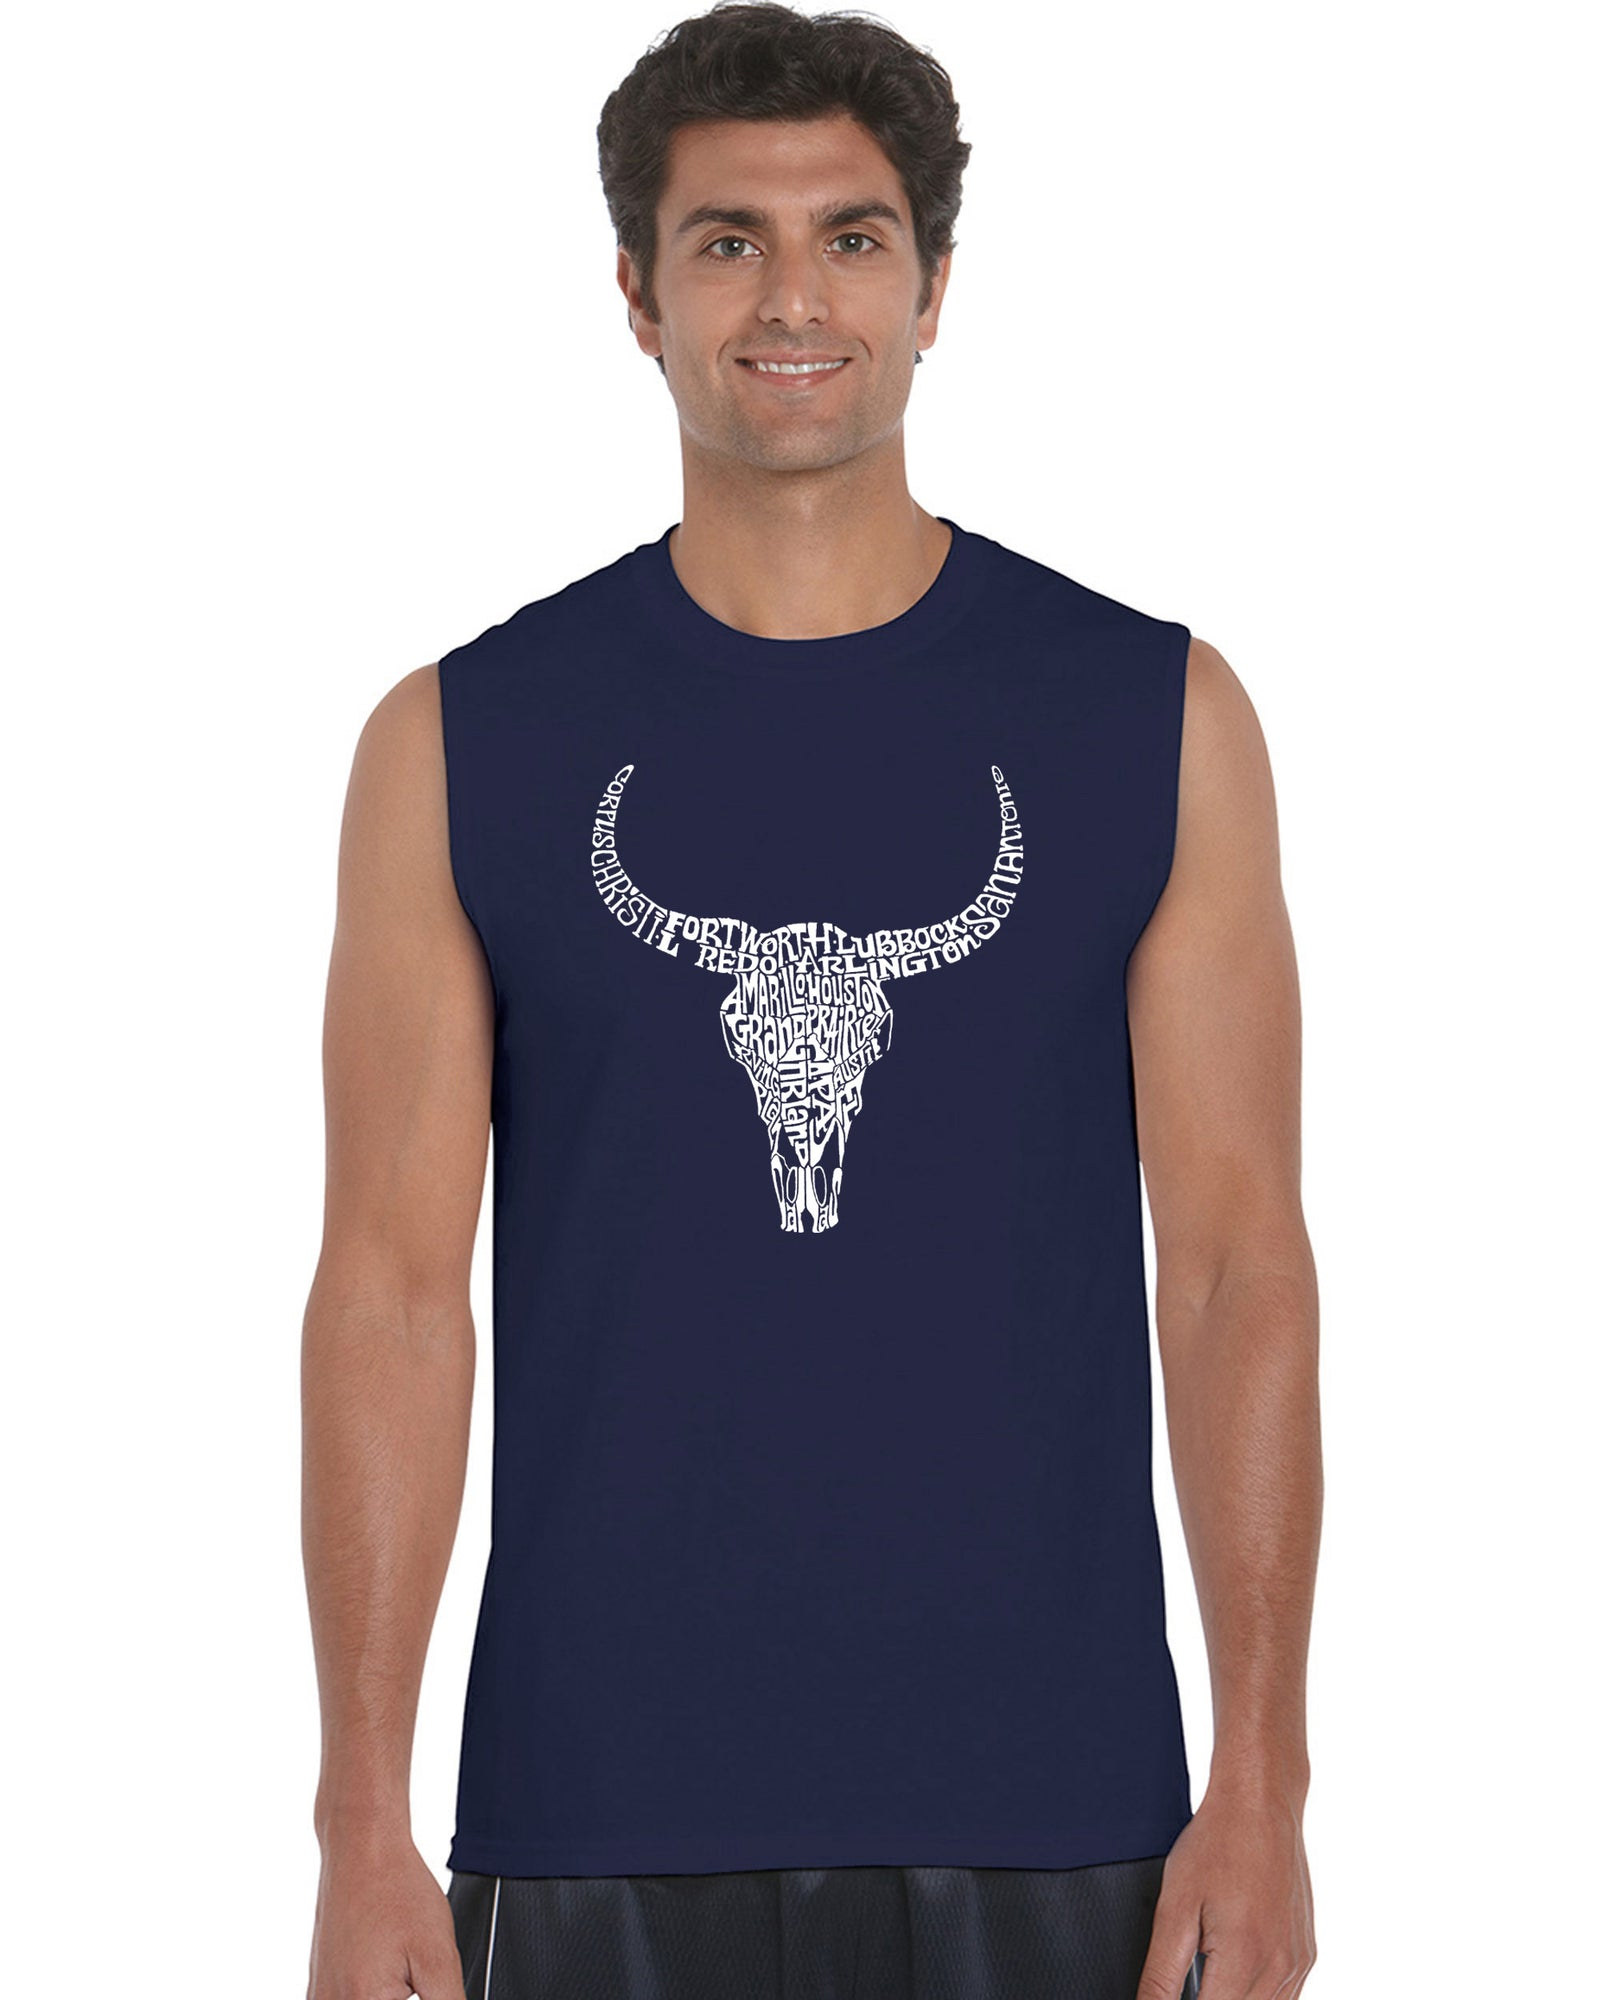 Men's Word Art Sleeveless T-shirt - Texas Skull